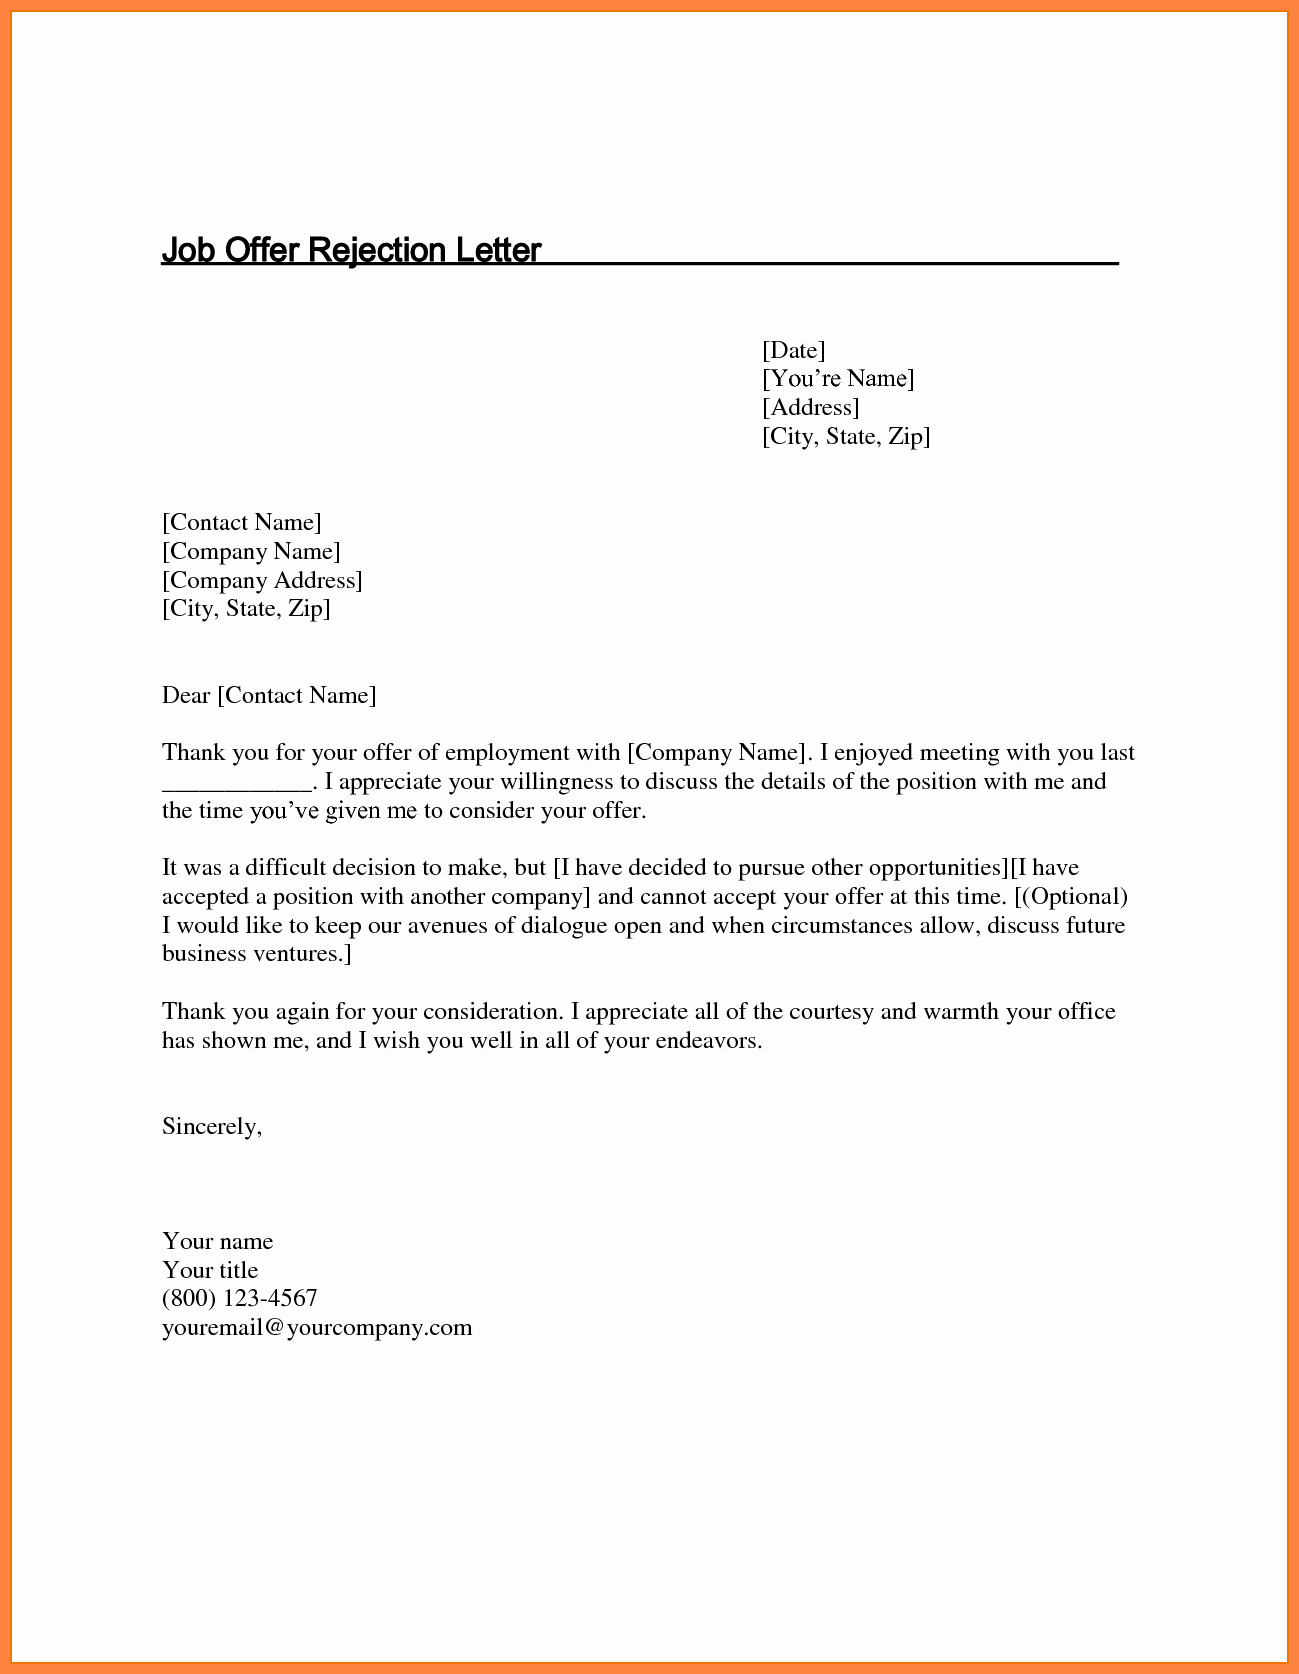 Job Rejection Email Template Fresh 5 Job Offer Rejection Letter